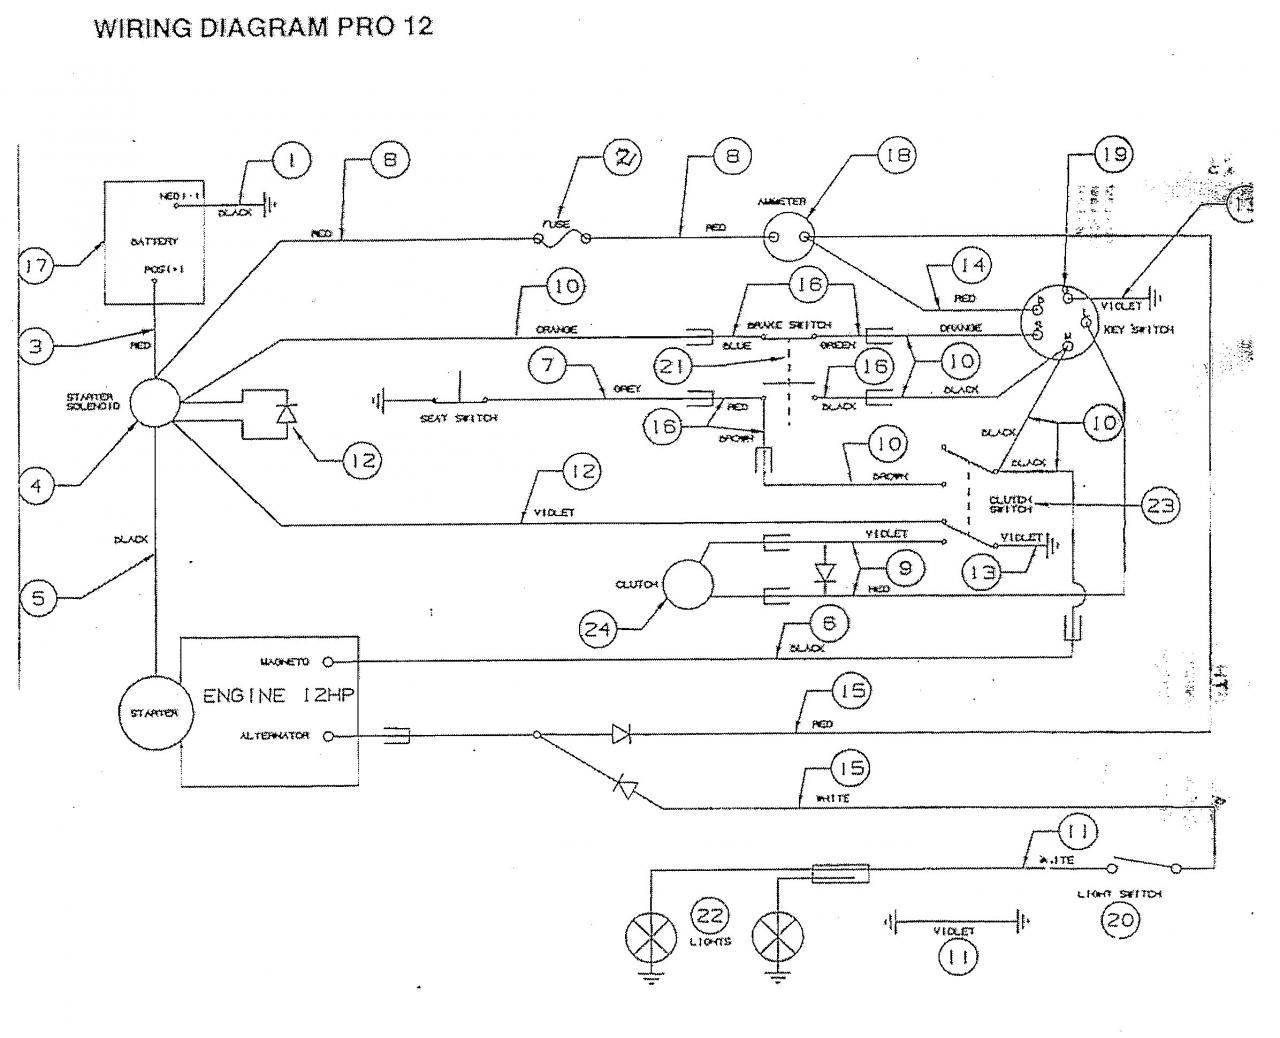 Briggs Wiring Diagram 12 Up Another Blog About And Stratton Riding Lawn Mower 12hp I C For Victor Pro Ride Outdoorking Rh Com